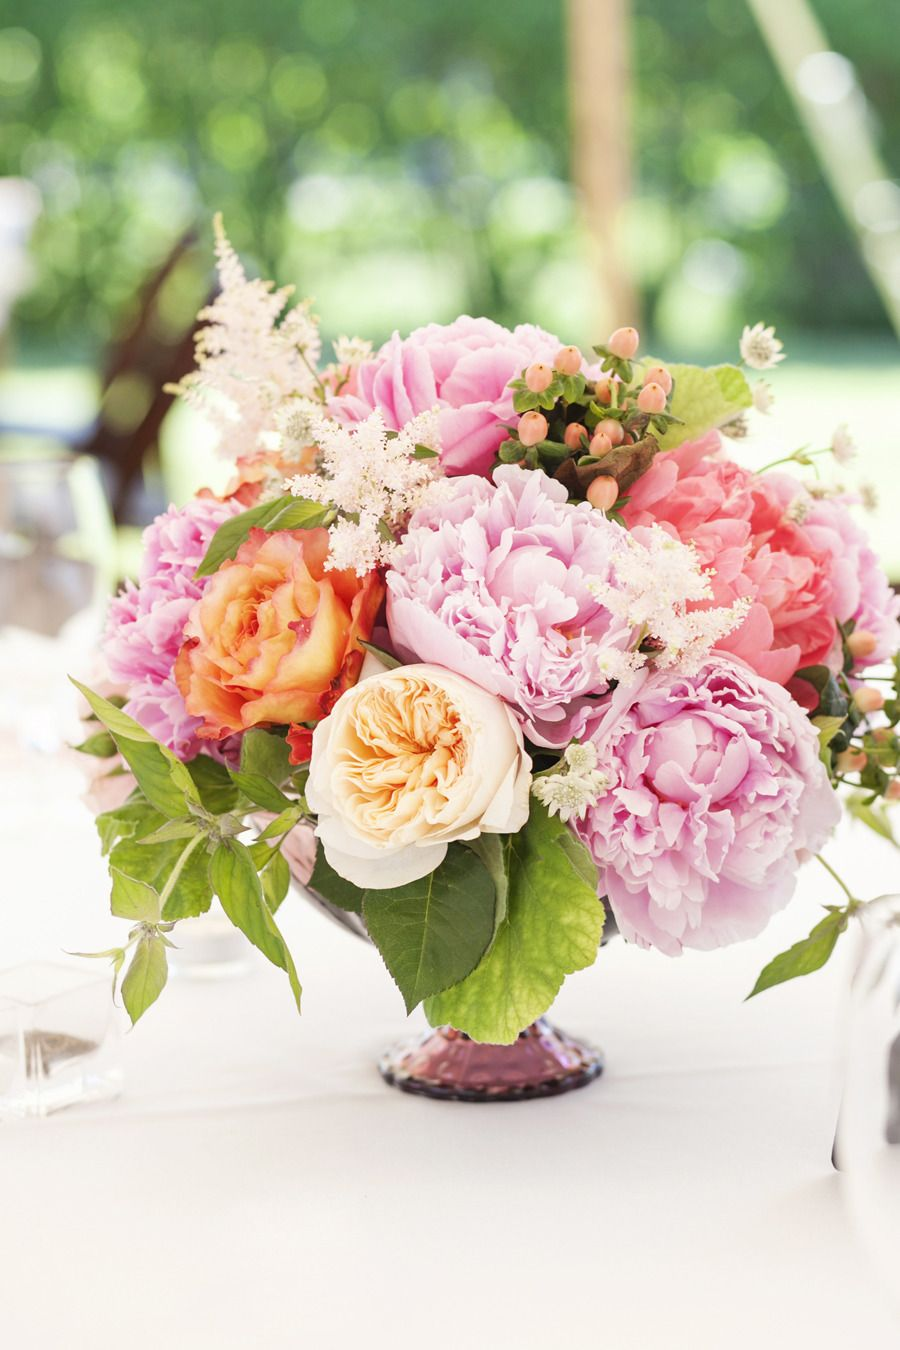 Unforgettable Wedding Reception Ideas. To see more: http://www.modwedding.com/2014/03/30/unforgettable-wedding-reception-ideas/ #wedding #weddings #reception #centerpiece #bouquet Photo: courtesy of Tanya Salazar Photography